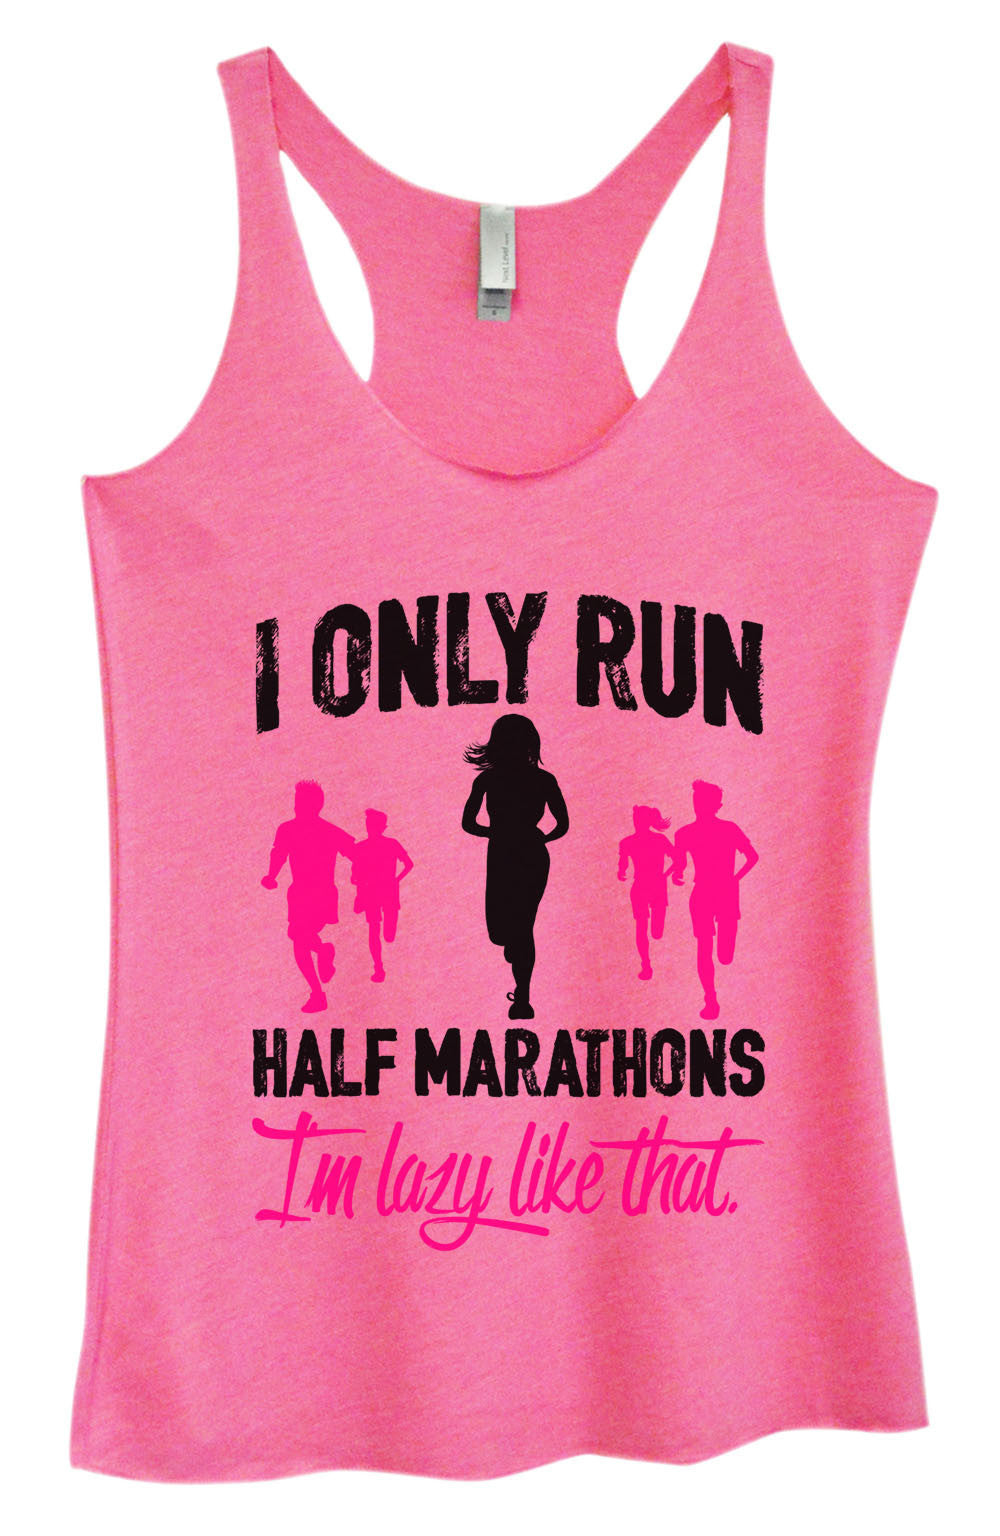 Womens Fashion Triblend Tank Top - I Only Run Half Marathons I'm Lazy Like That. - Tri-1489 - Funny Shirts Tank Tops Burnouts and Triblends  - 1